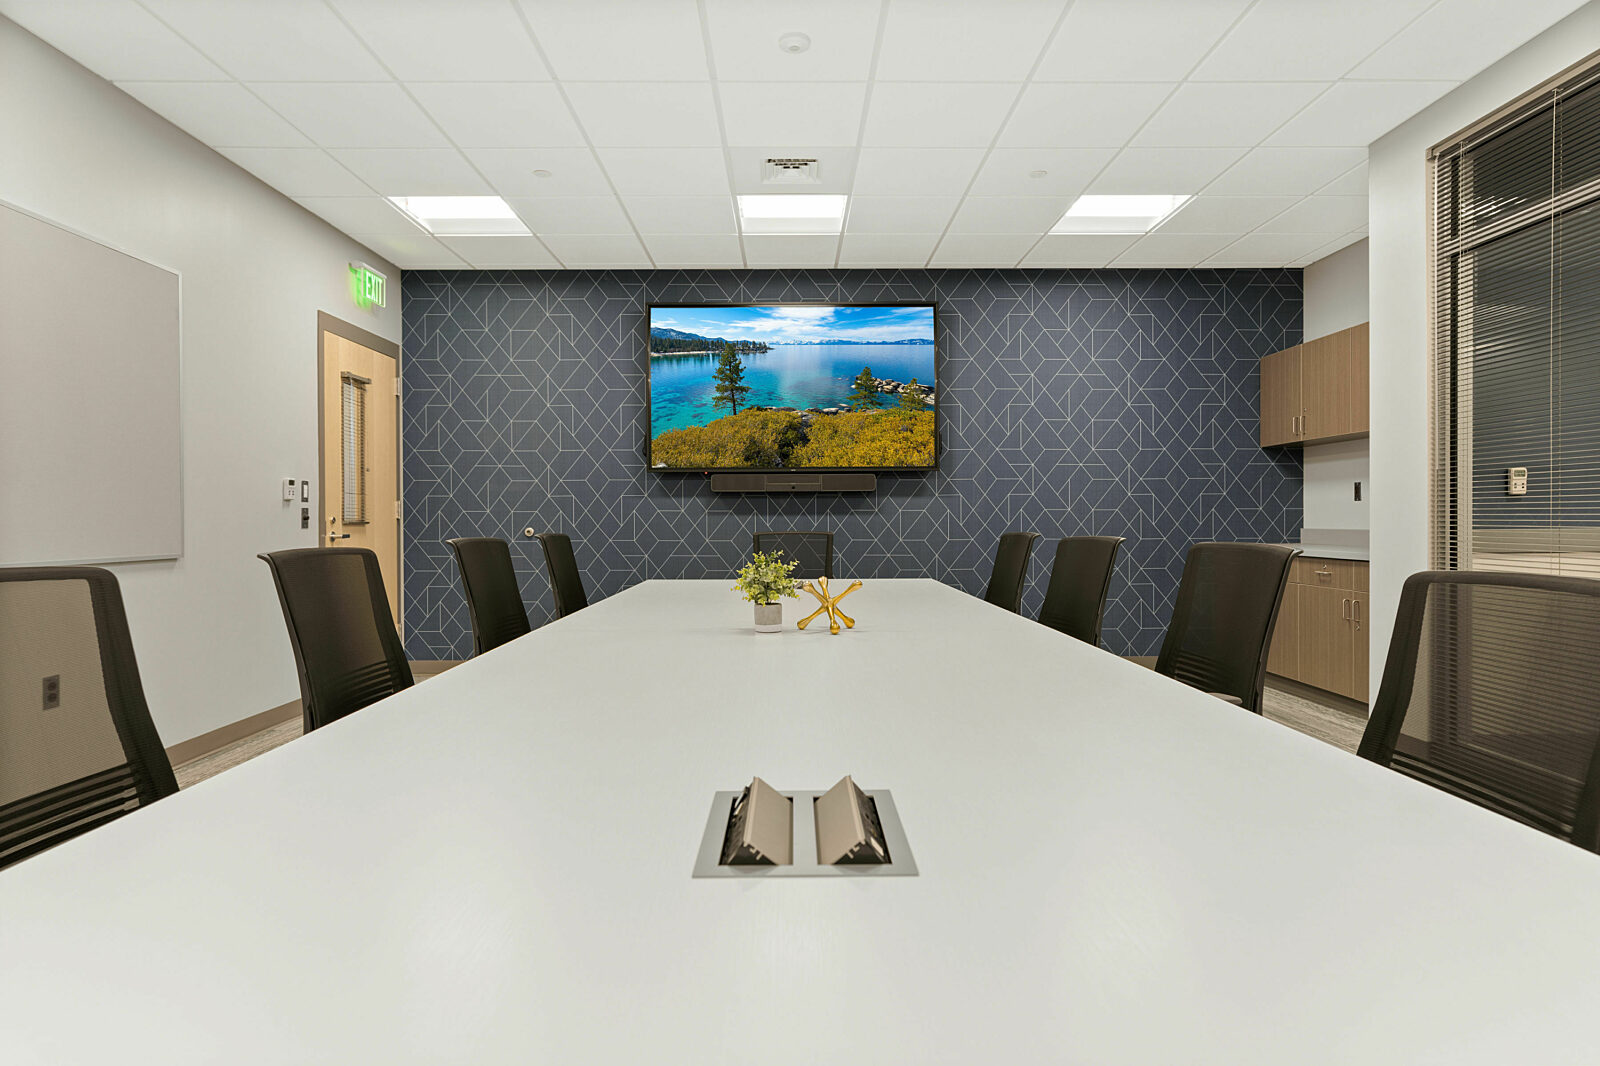 conference room, conference chairs, office